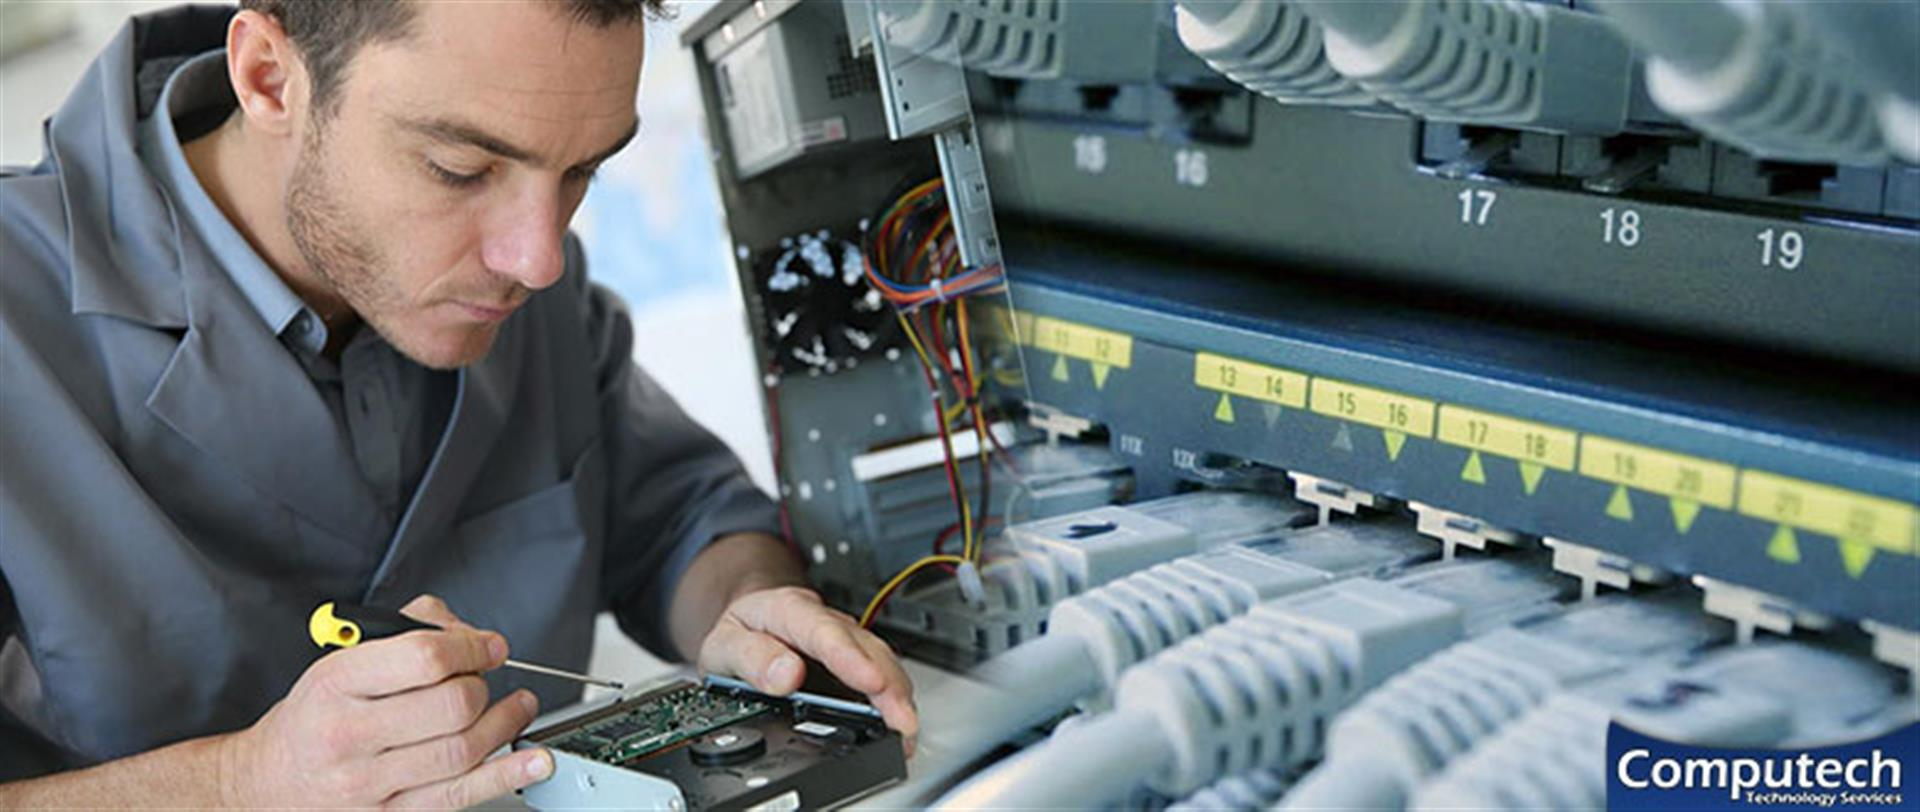 Demopolis Alabama On Site PC & Printer Repair, Networking, Telecom & Data Inside Wiring Services